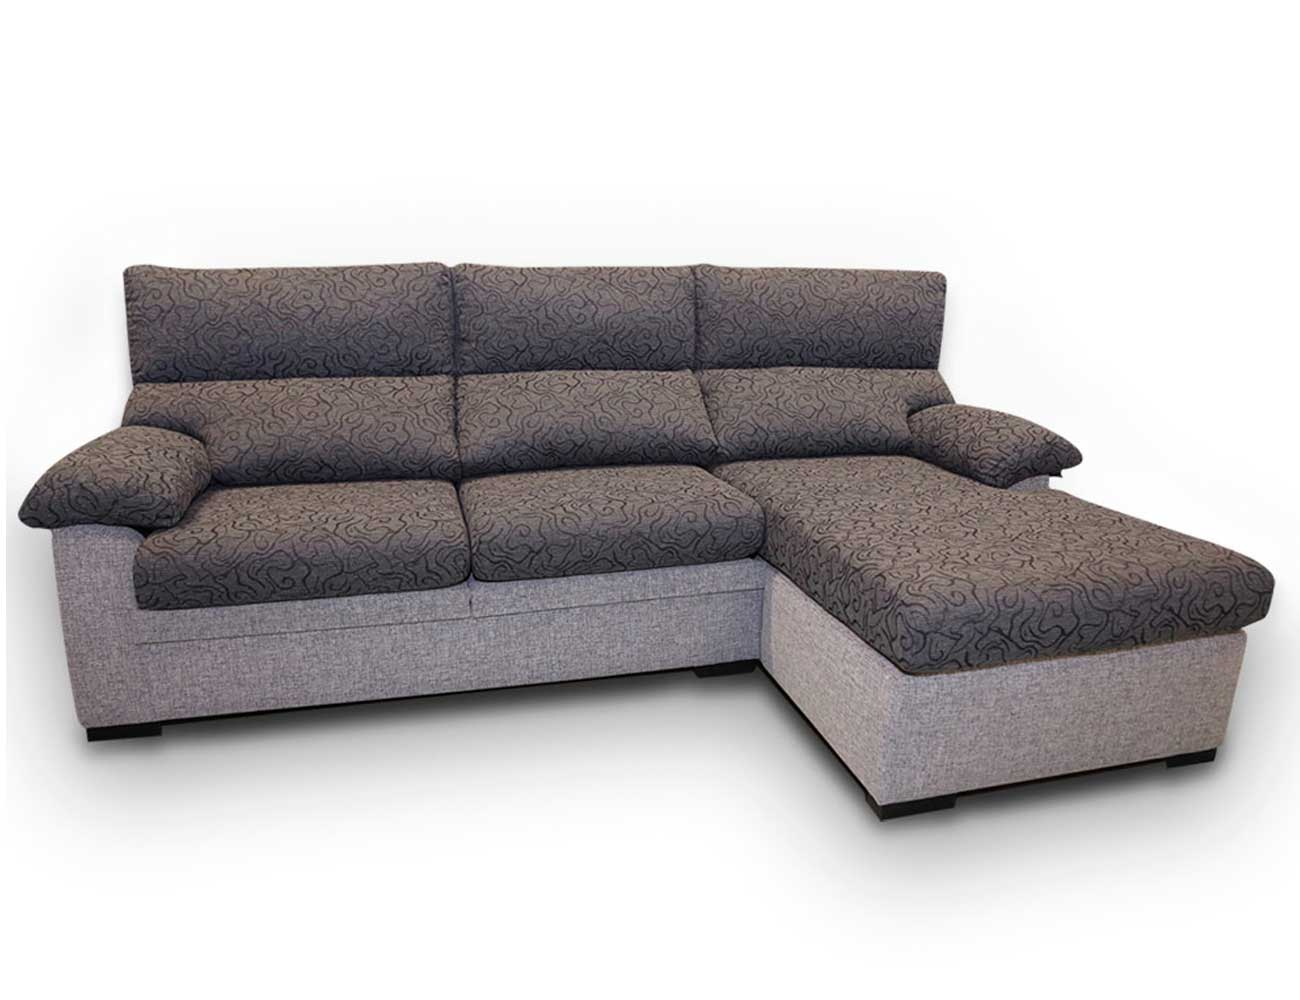 4900_sofa chaiselongue asientos extraibles gris marengo4